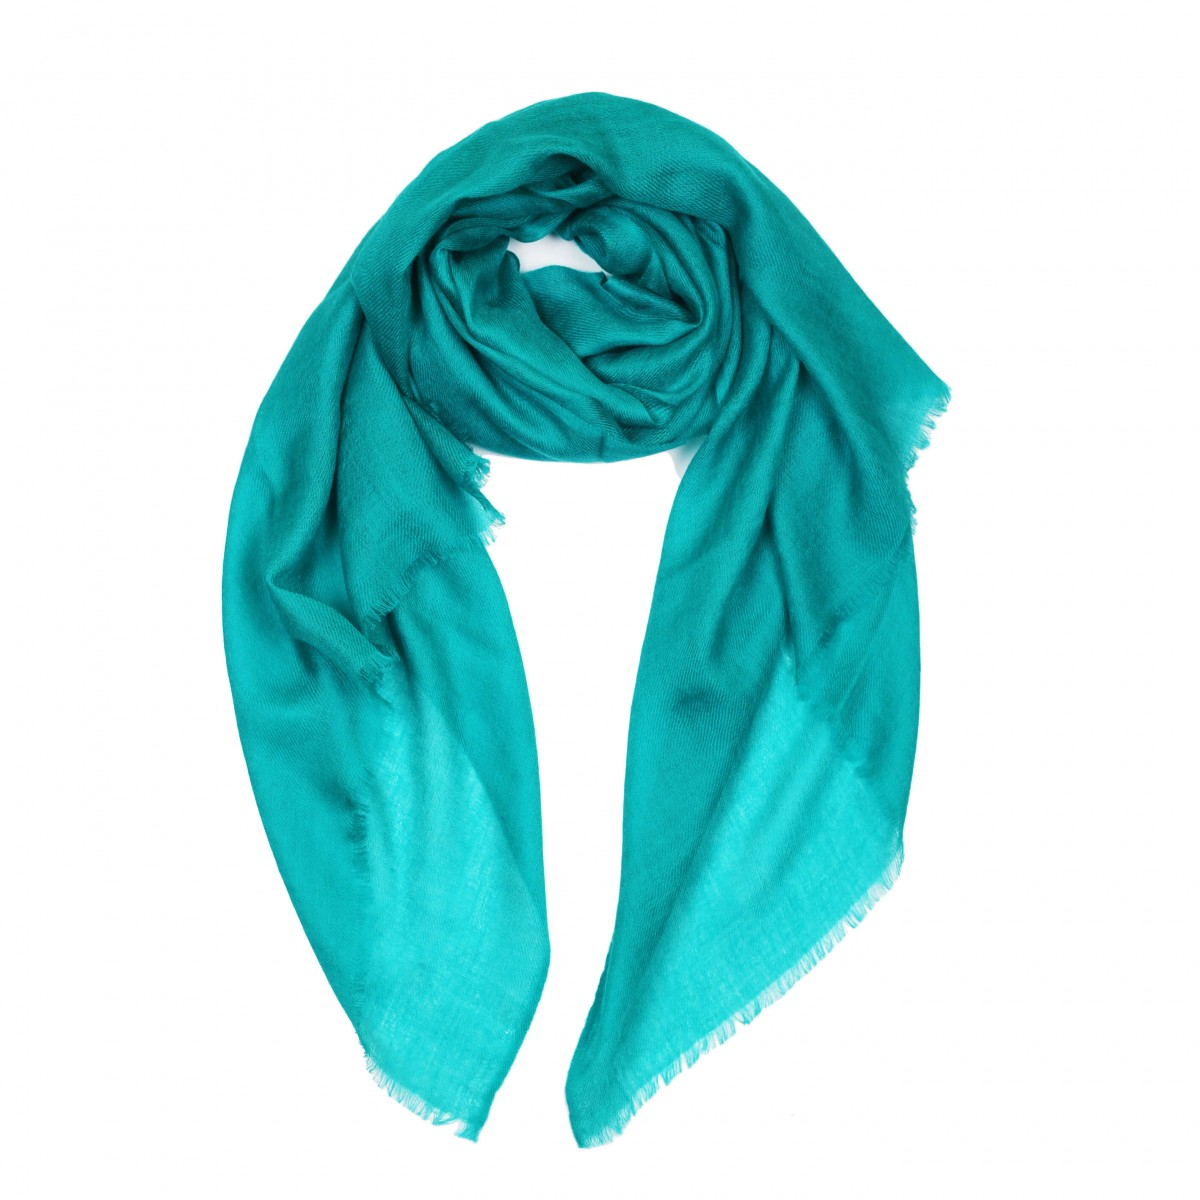 Sheer Pashmina Scarf - Emerald Sea